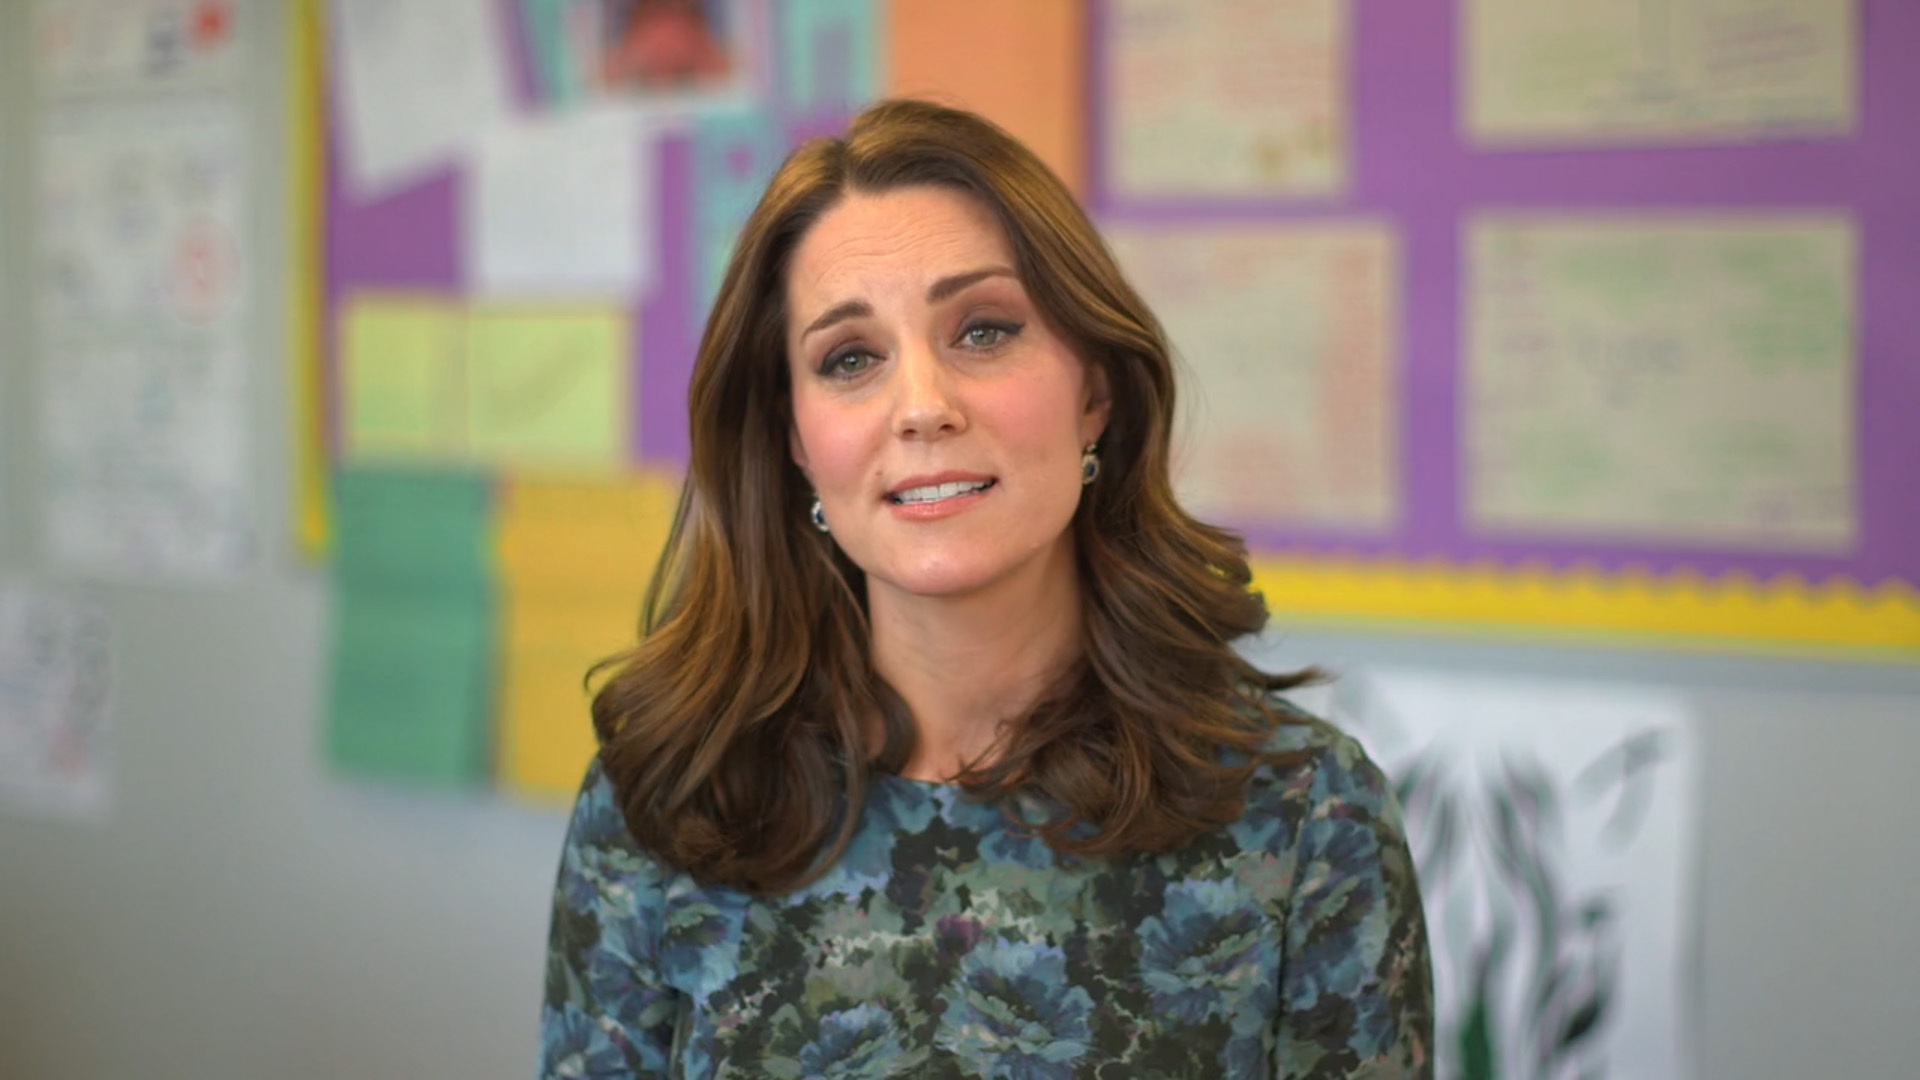 The Duchess of Cambridge has gone into labour, Kensington Palace announced today